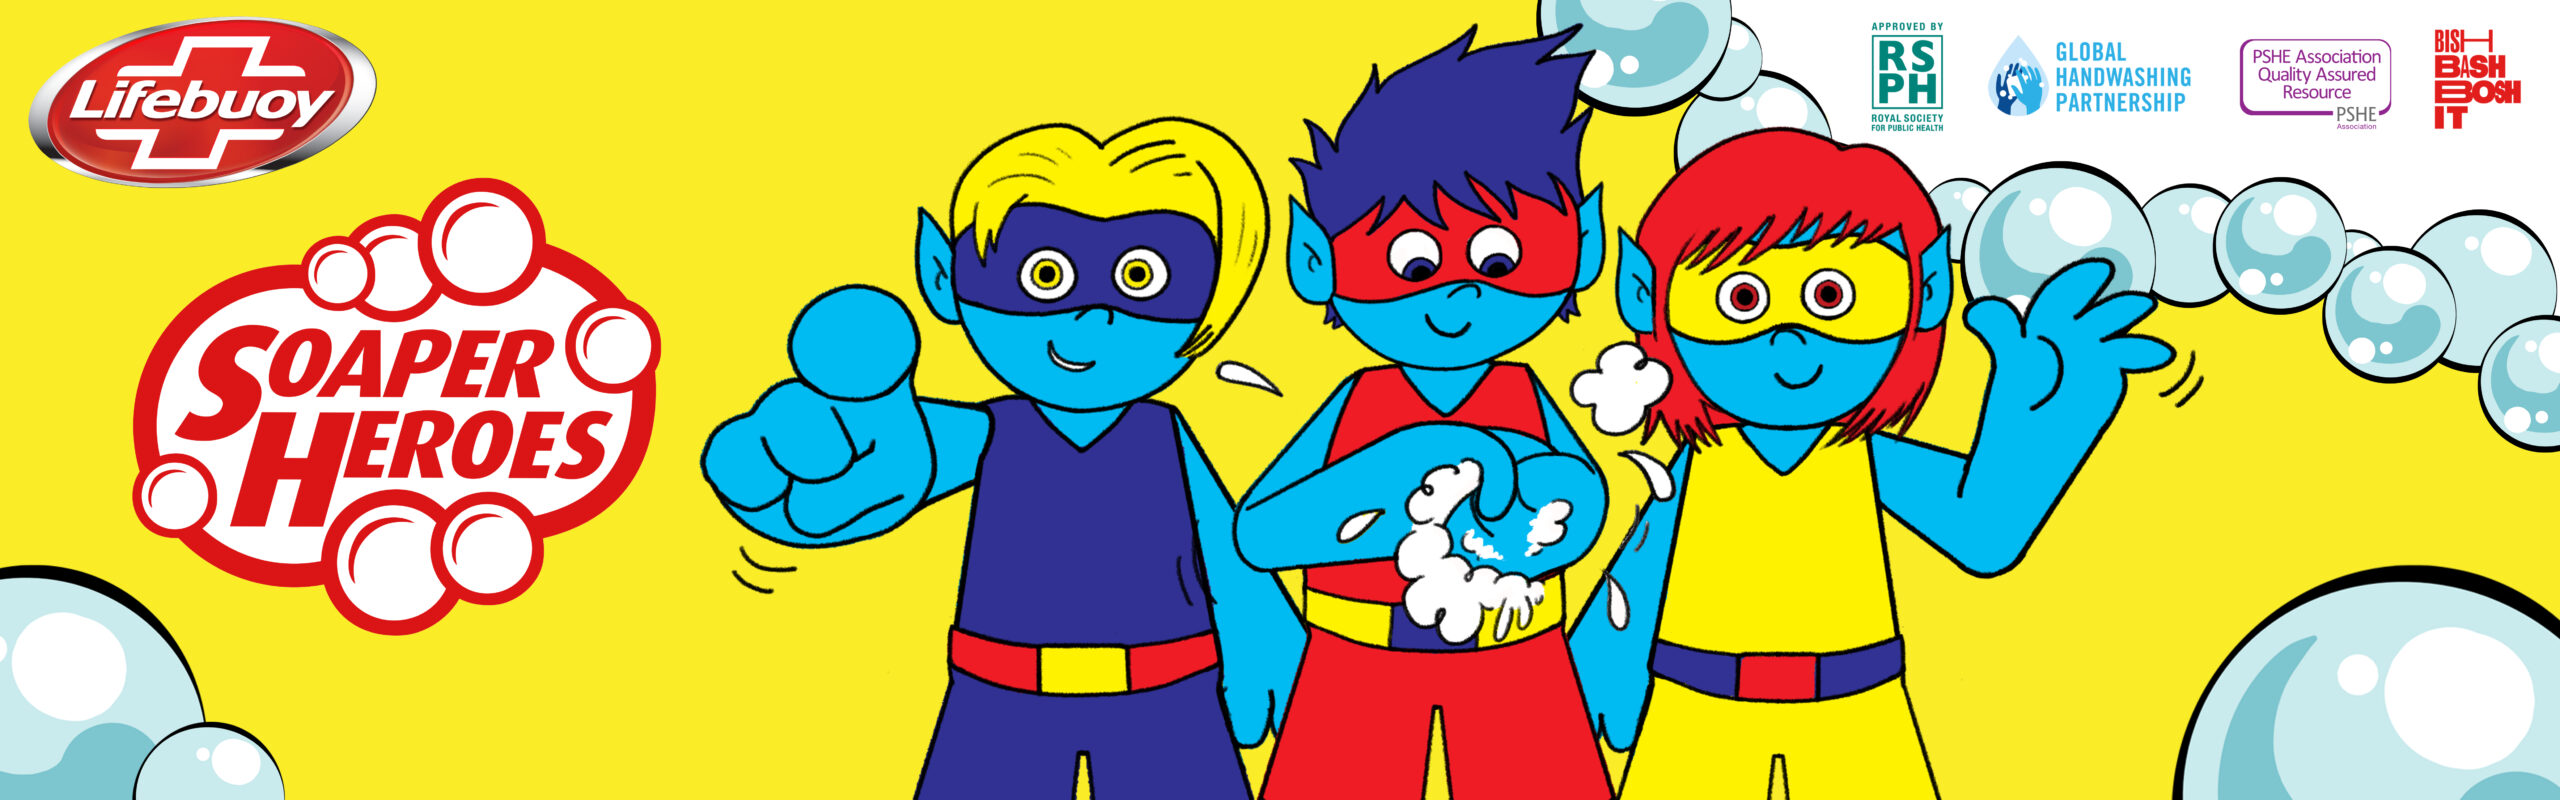 Banner image showing three cartoon-style Soaper Heroes, in bright primary colours, washing their hands on yellow background